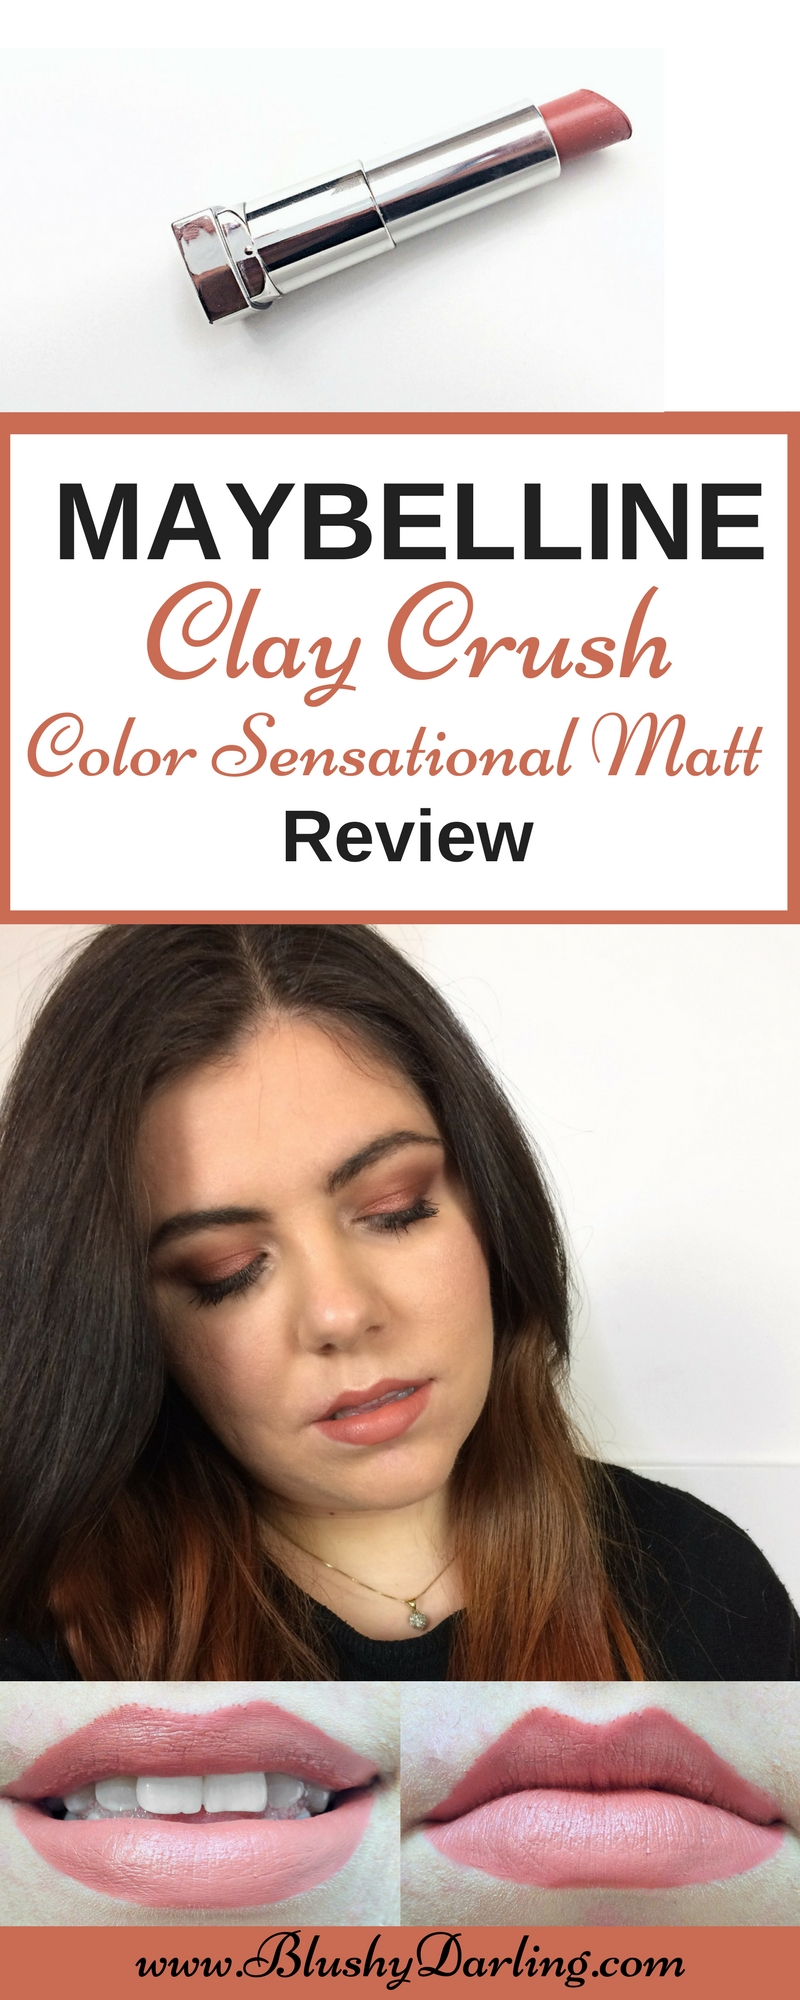 Maybelline Colour Sensational Matte Clay Crush.jpg